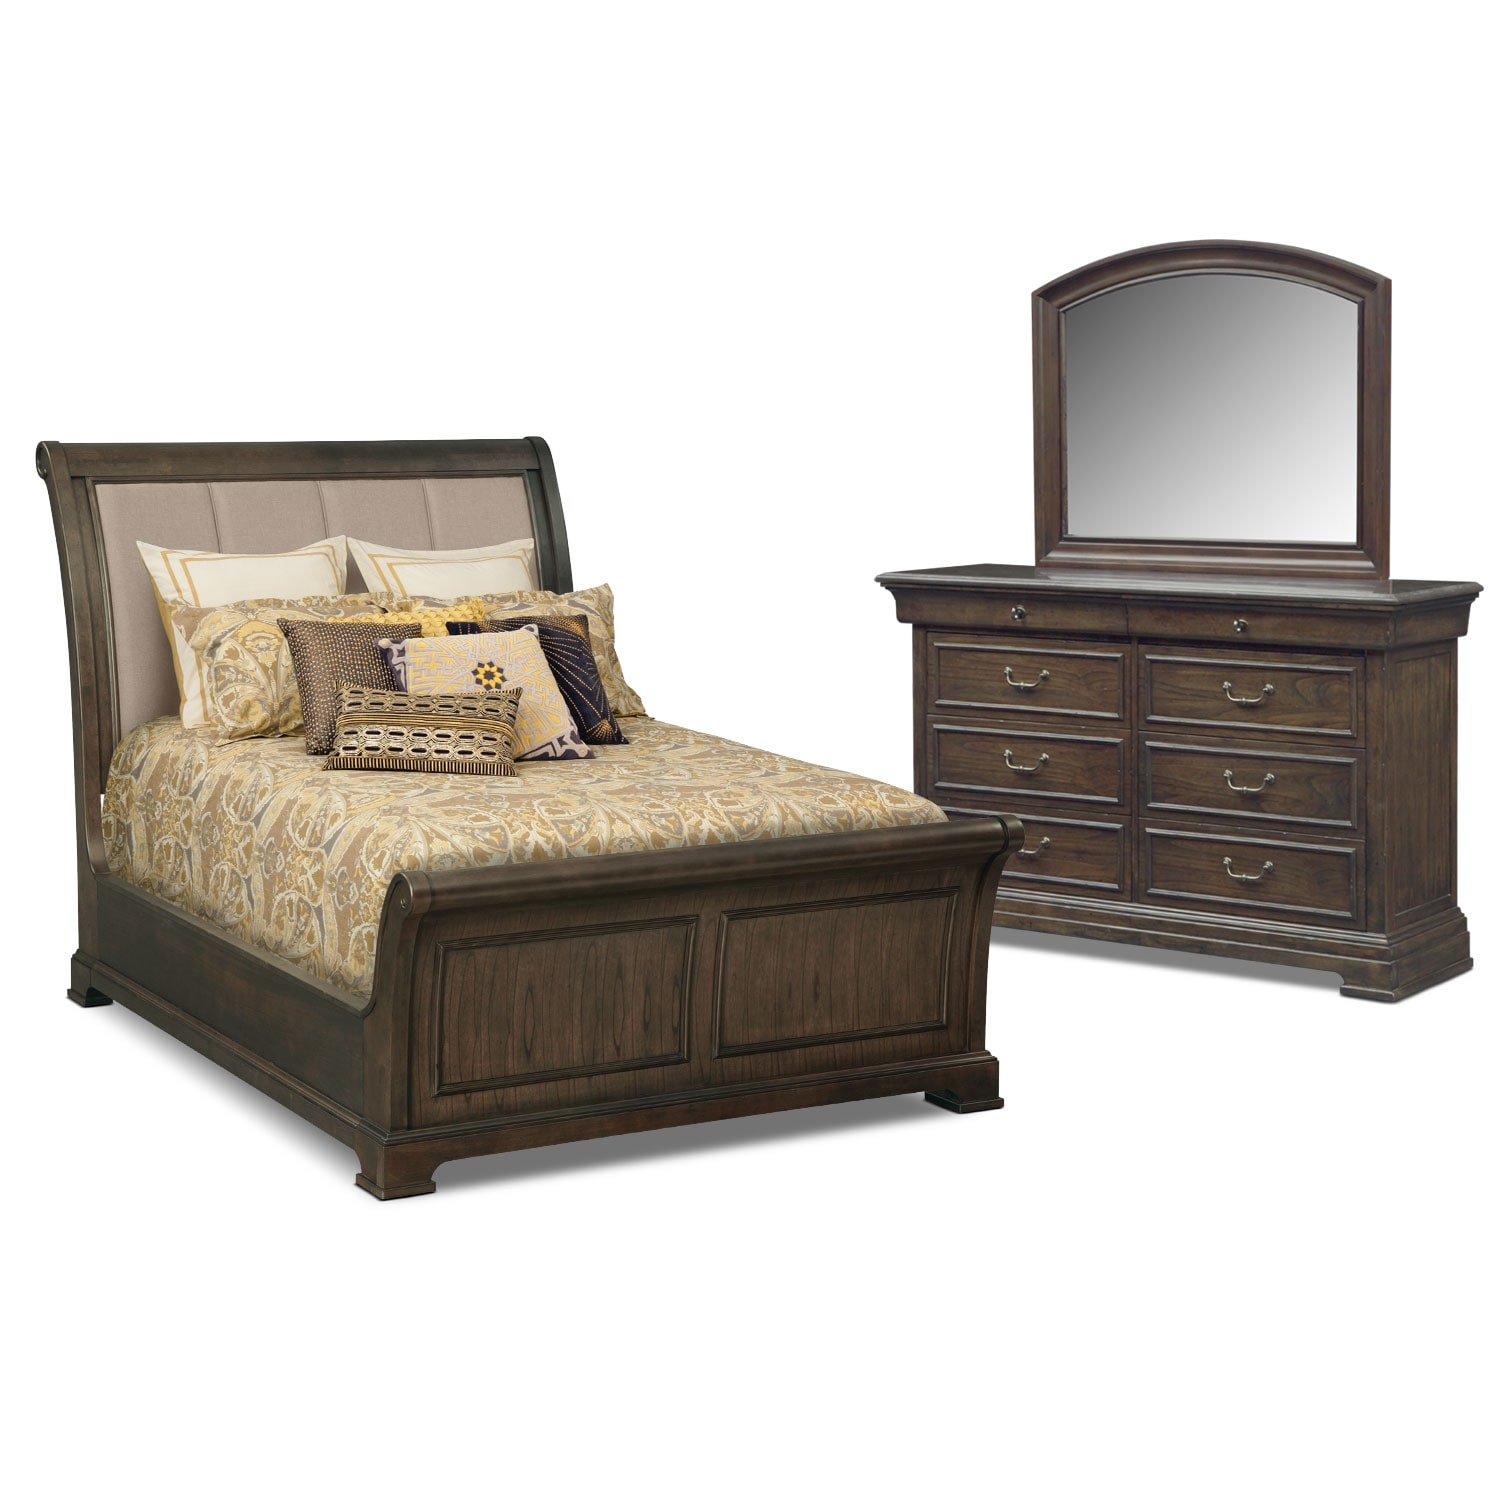 Collinwood 5 Pc. Queen Bedroom Package